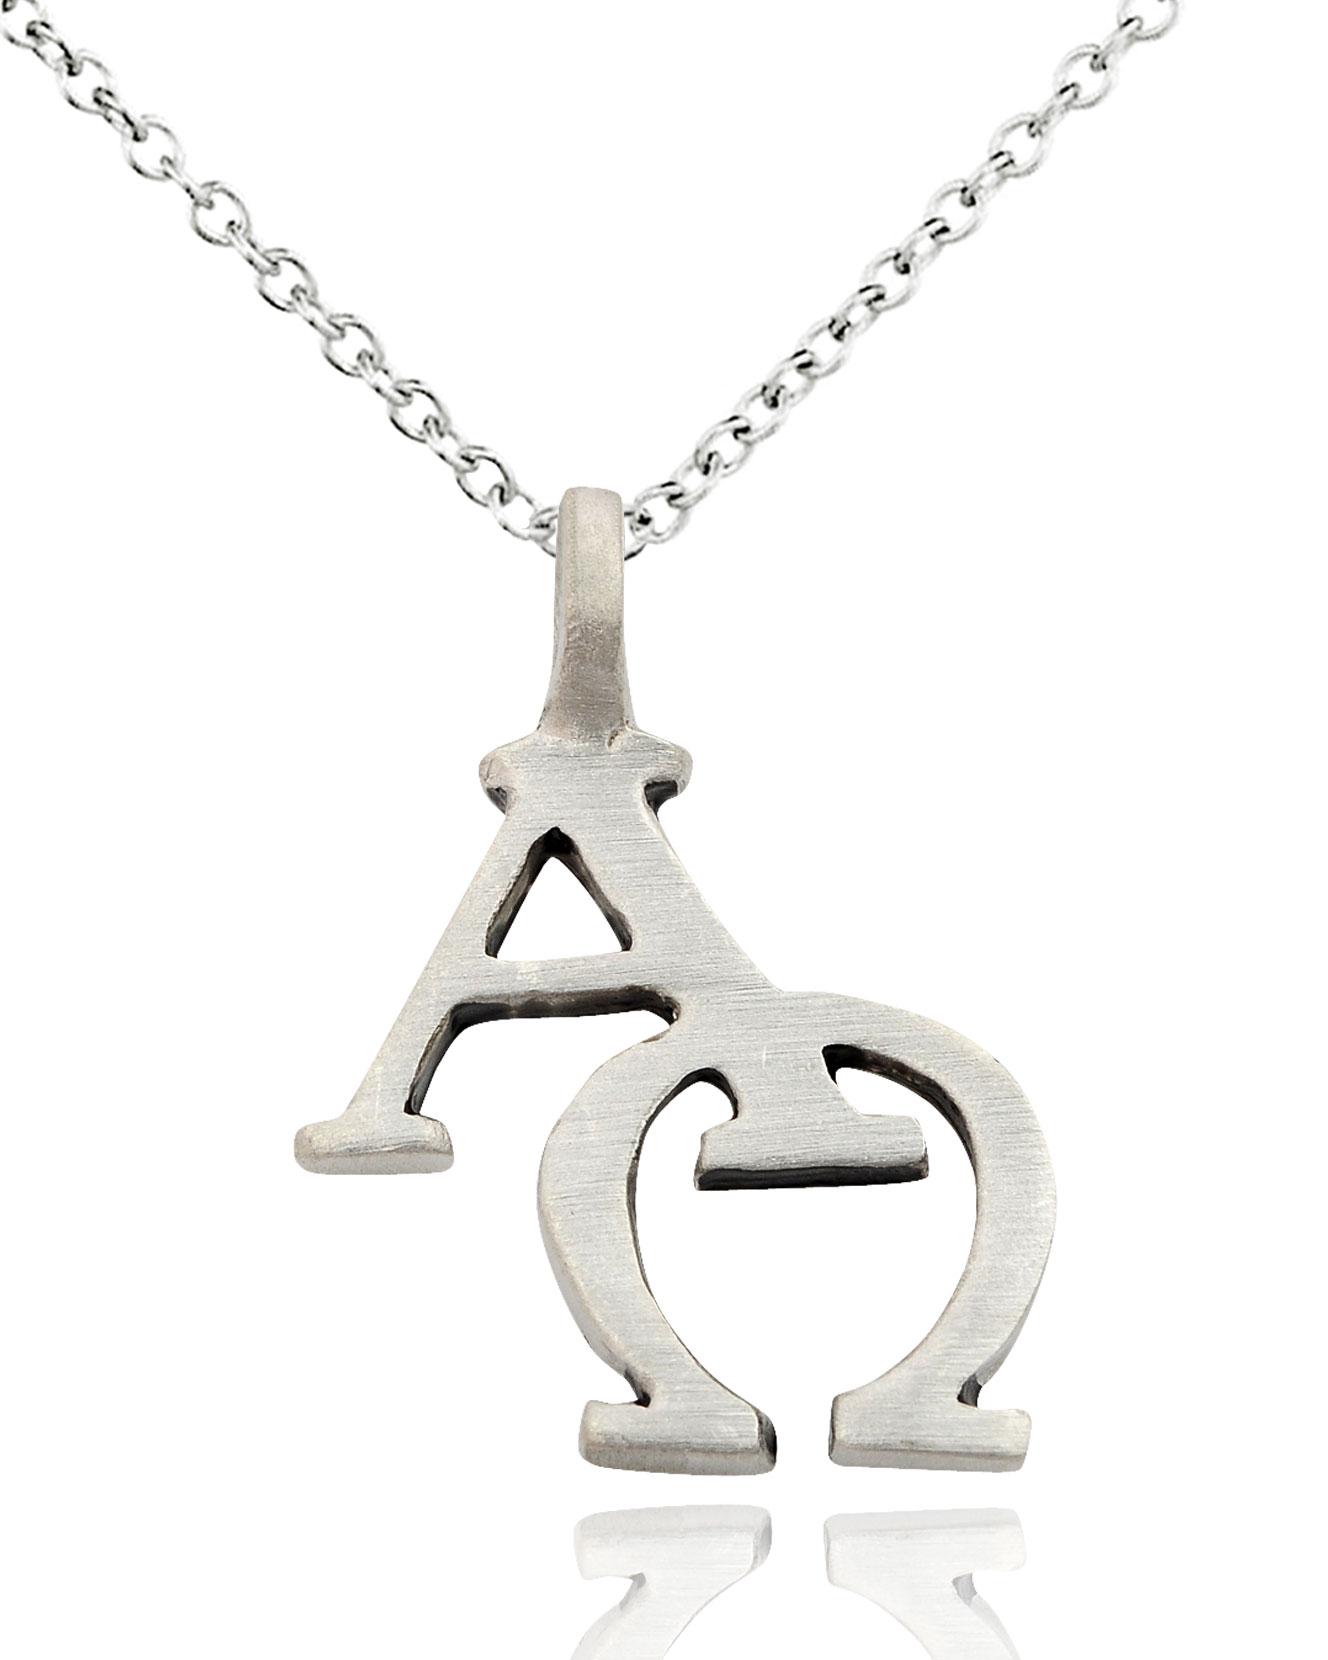 Alpha omega silver pewter charm necklace pendant jewelry ebay alpha omega silver pewter charm necklace pendant jewelry mozeypictures Gallery